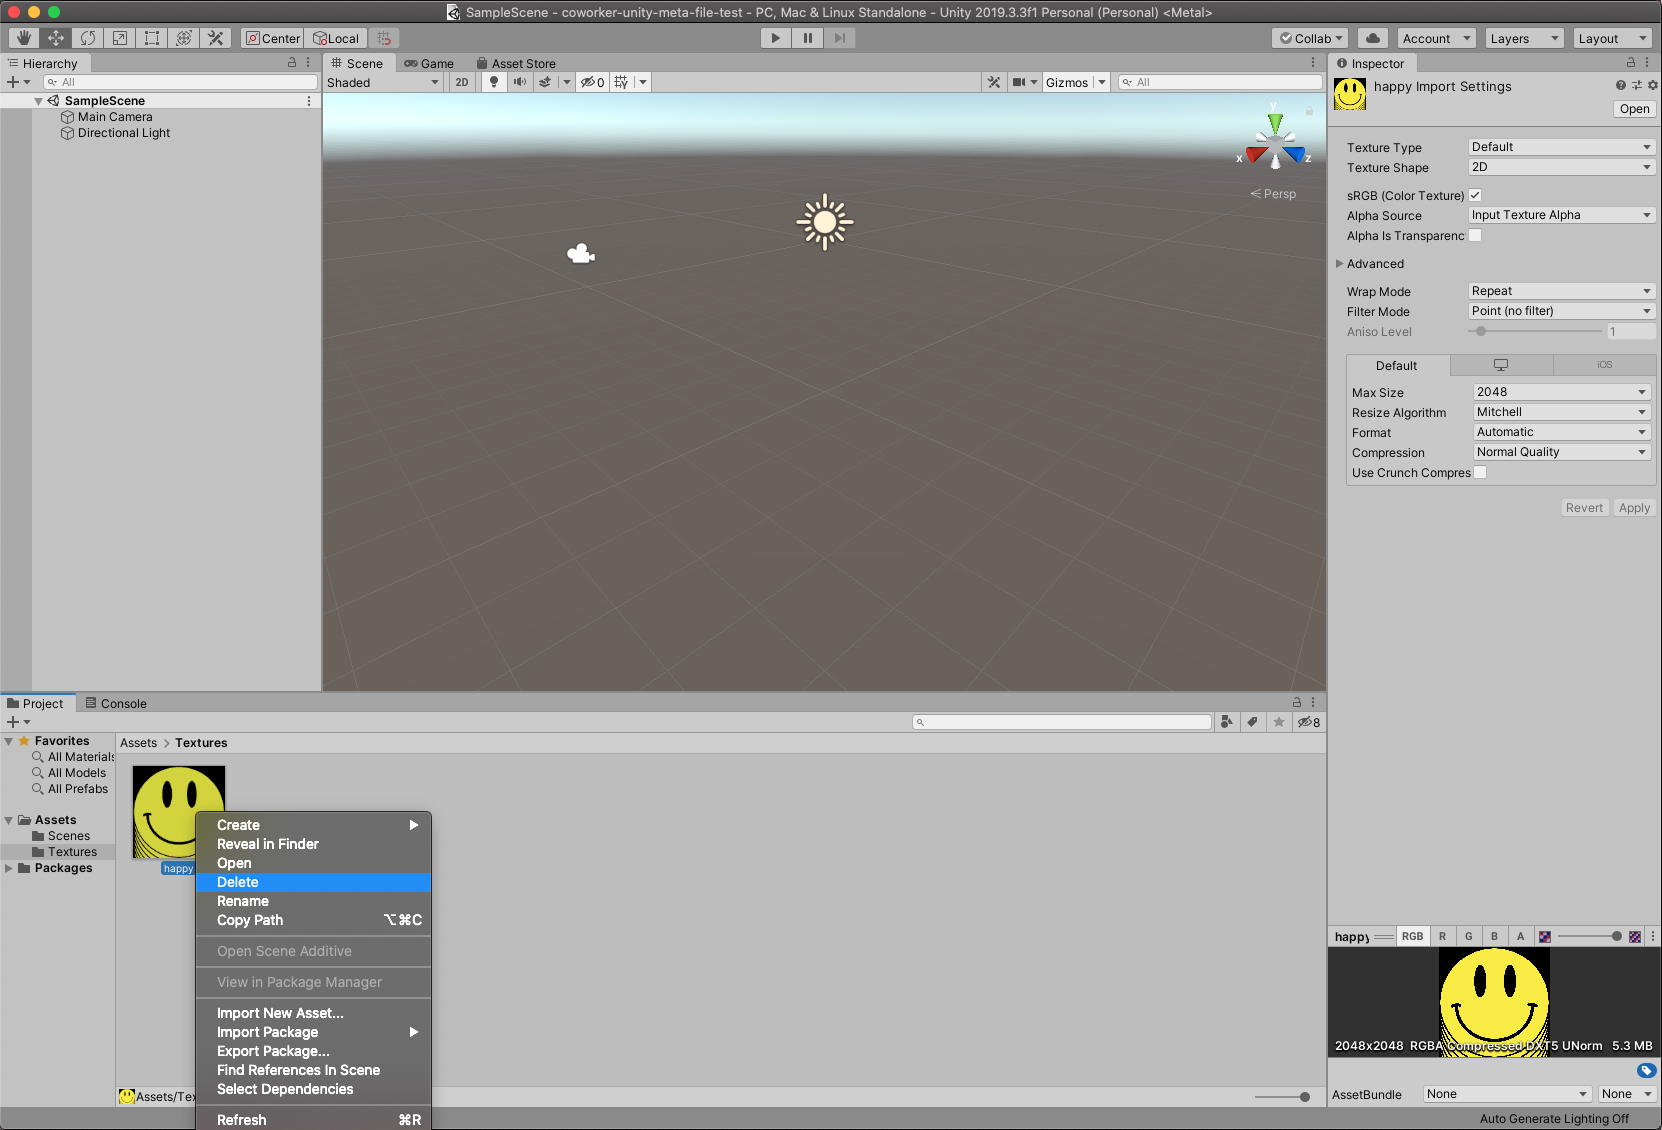 Deleting an Asset in the Unity Editor